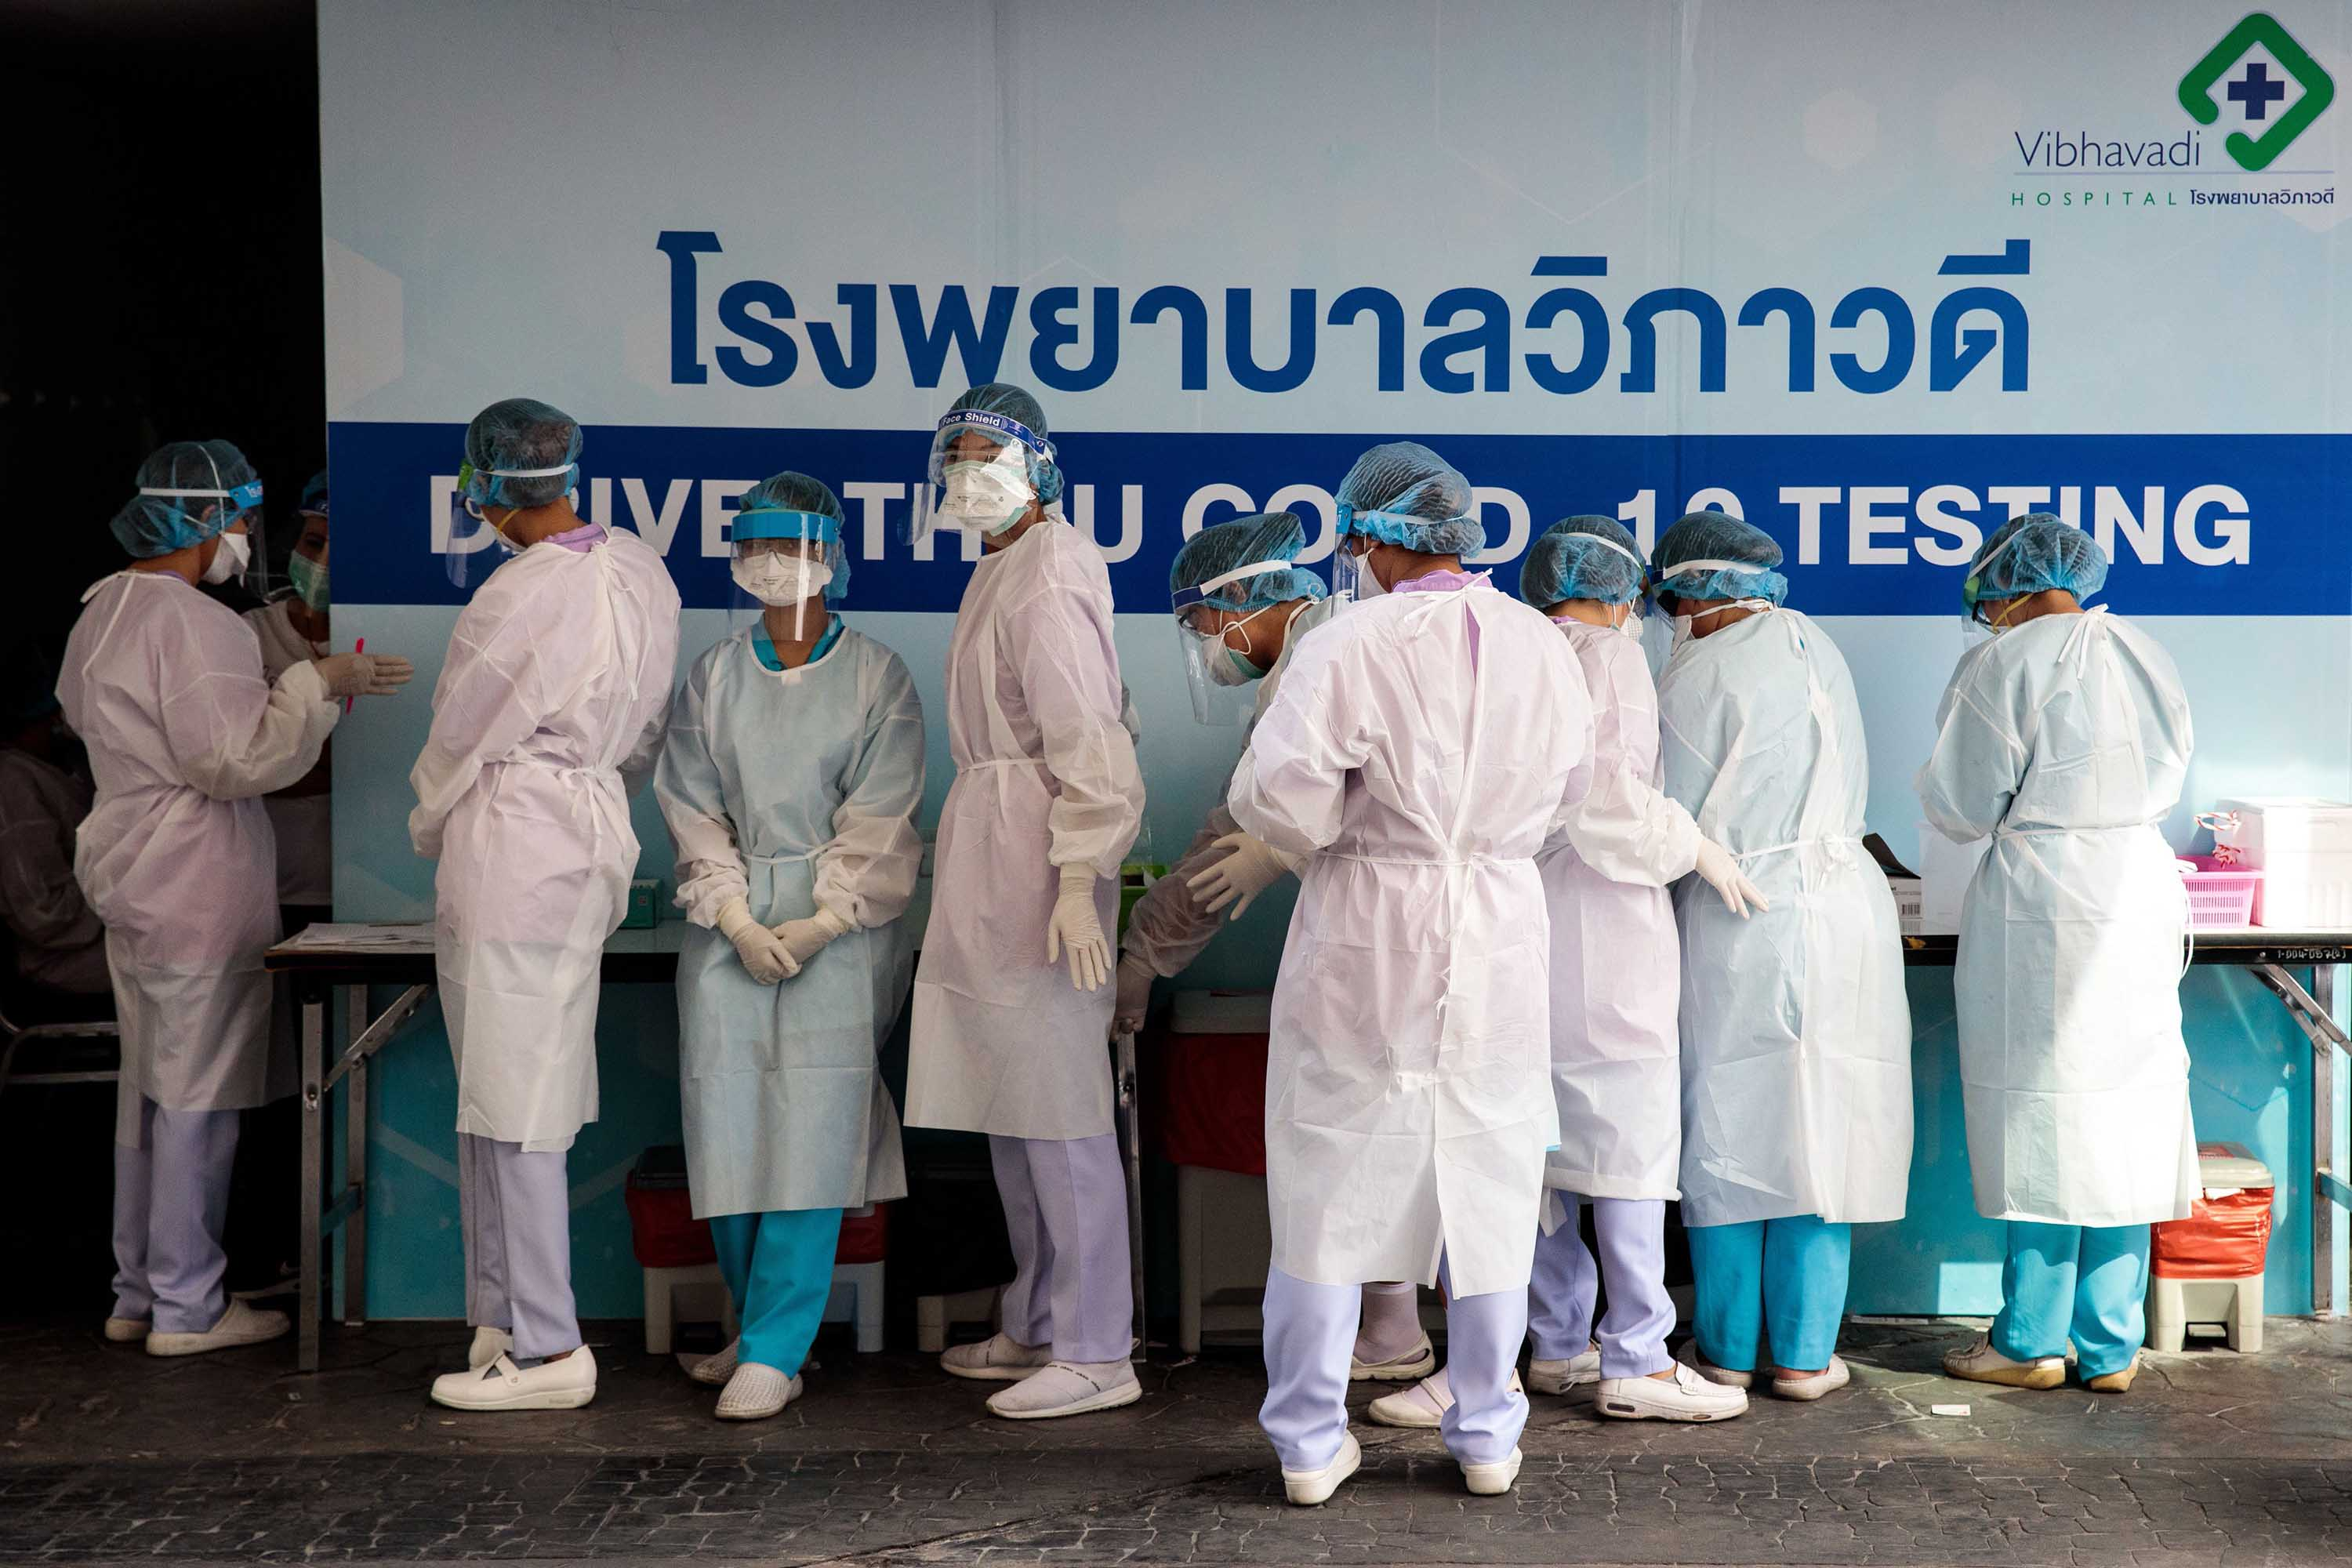 Medical staff prepare to test people for coronavirus at a drive-through testing center in Bangkok on March 25.